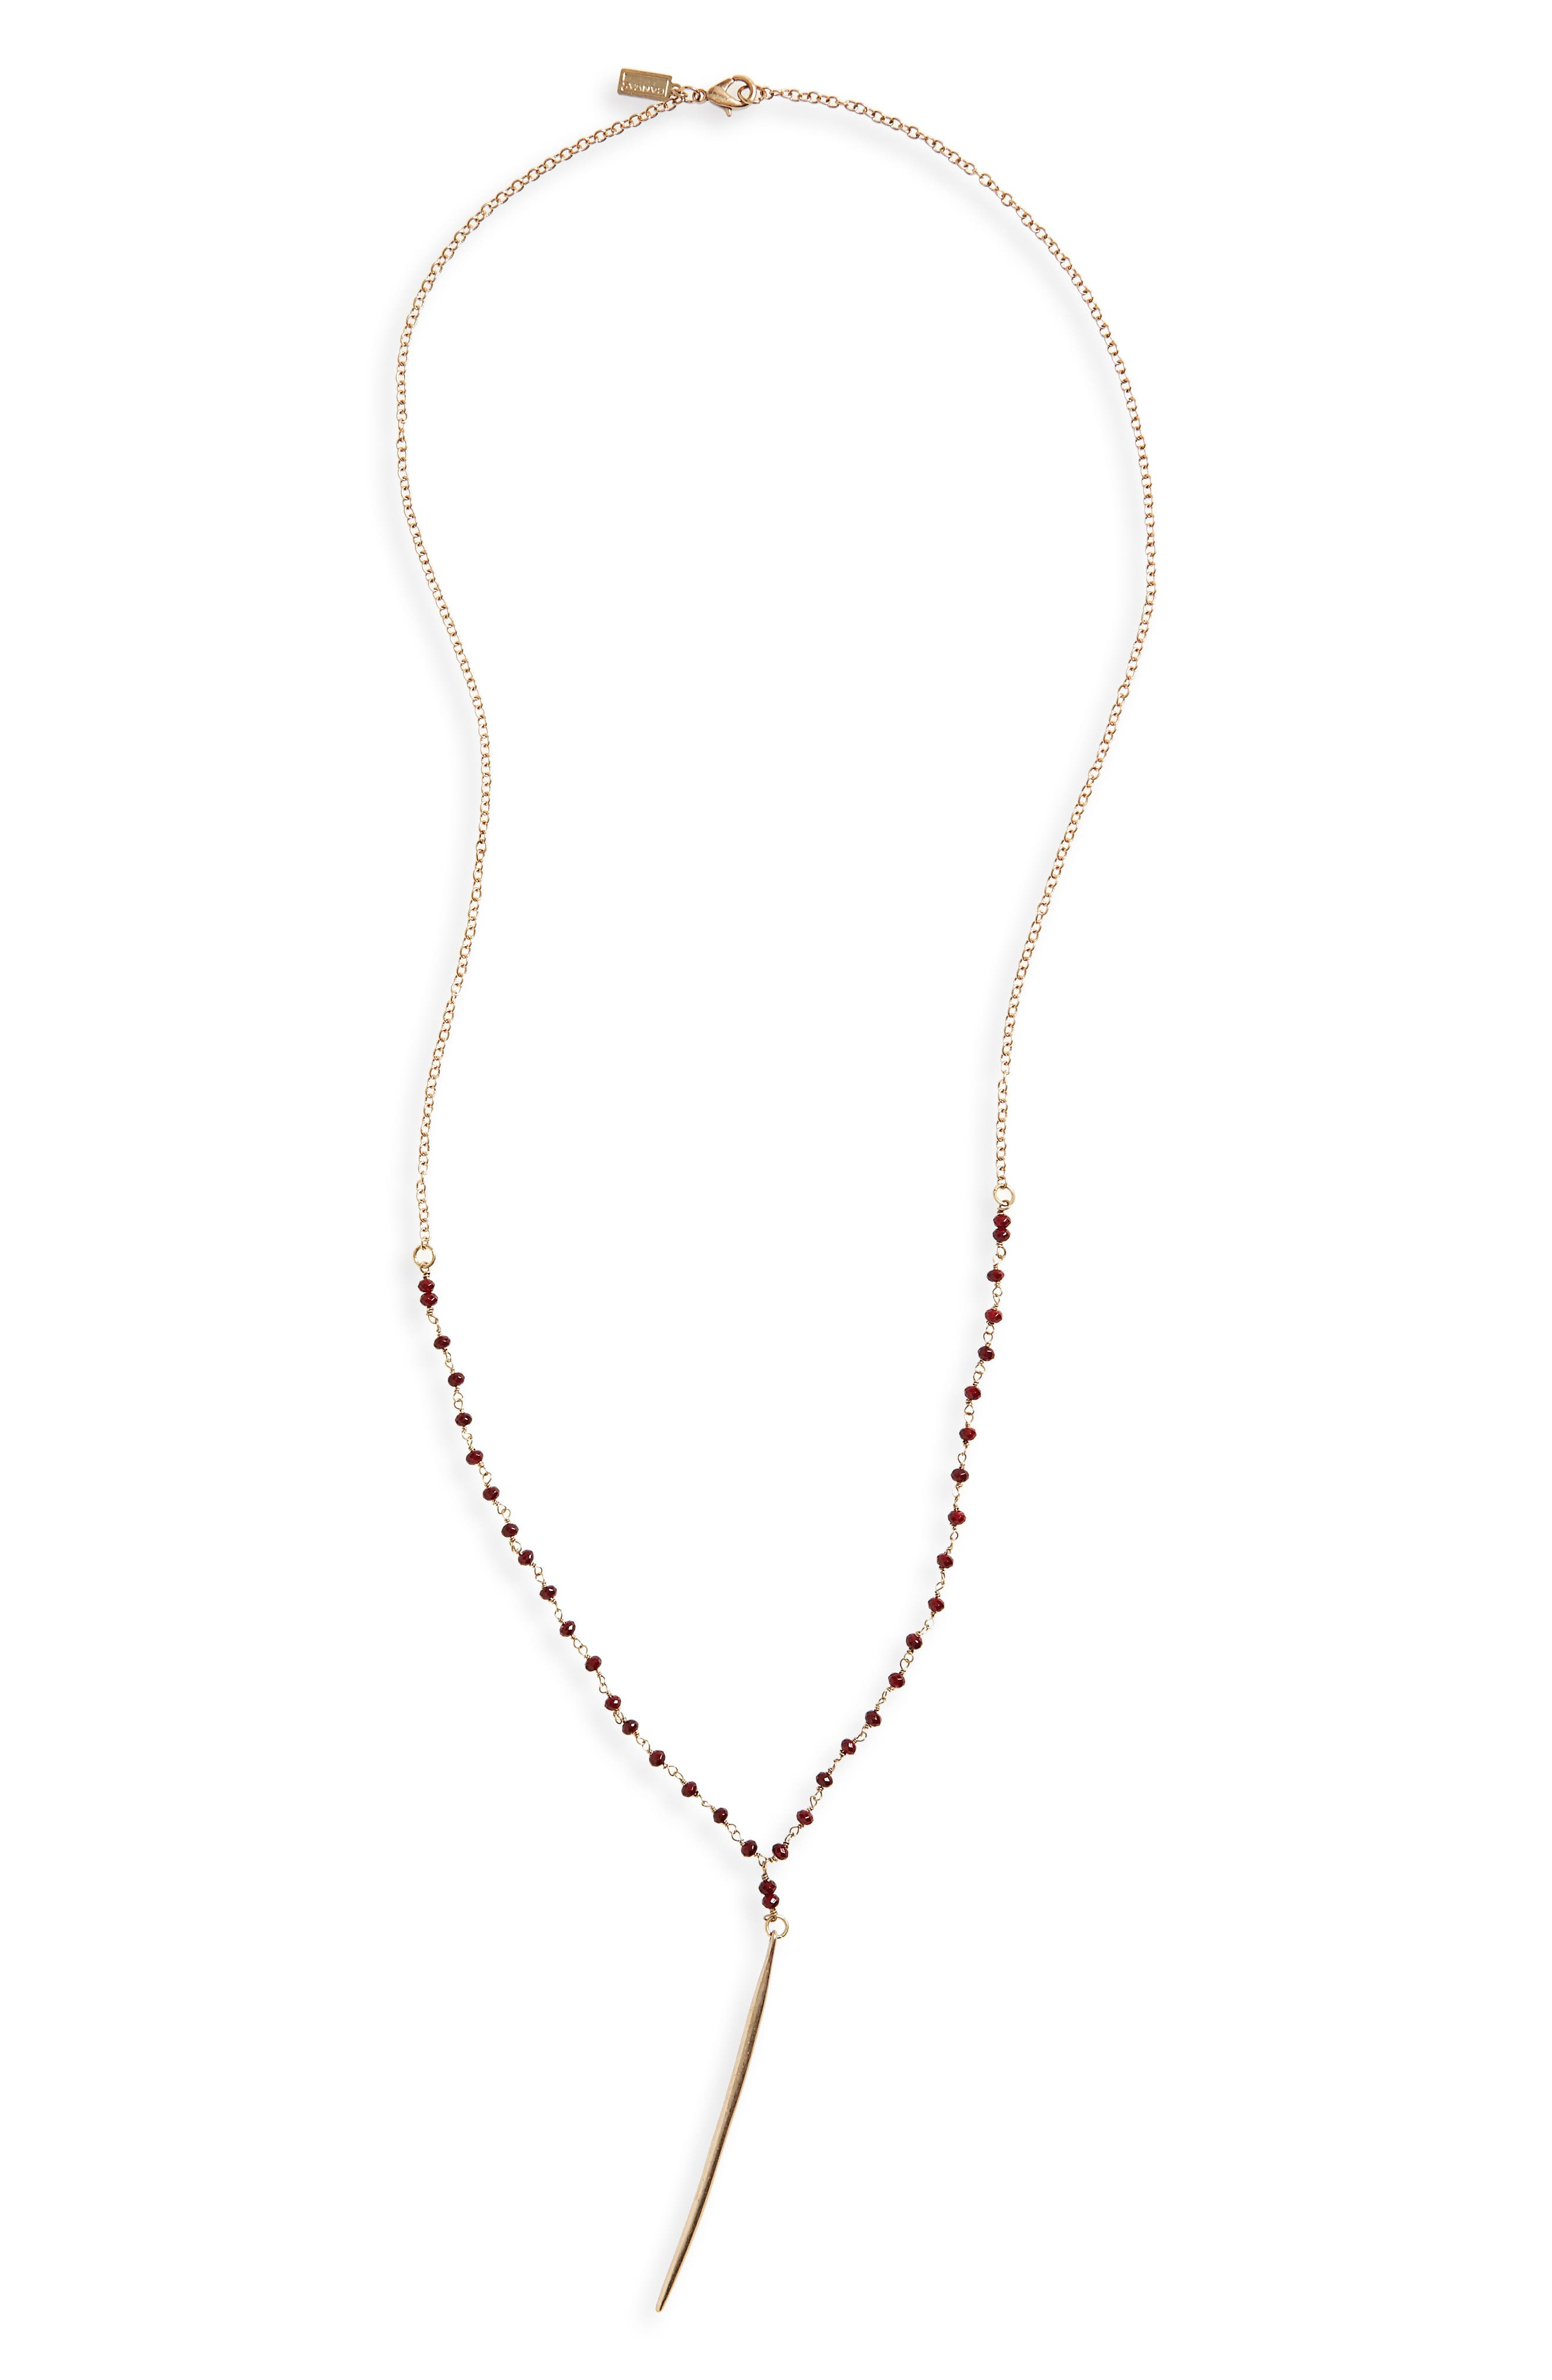 Delicate Spear Y-Necklace,                             Main thumbnail 1, color,                             600